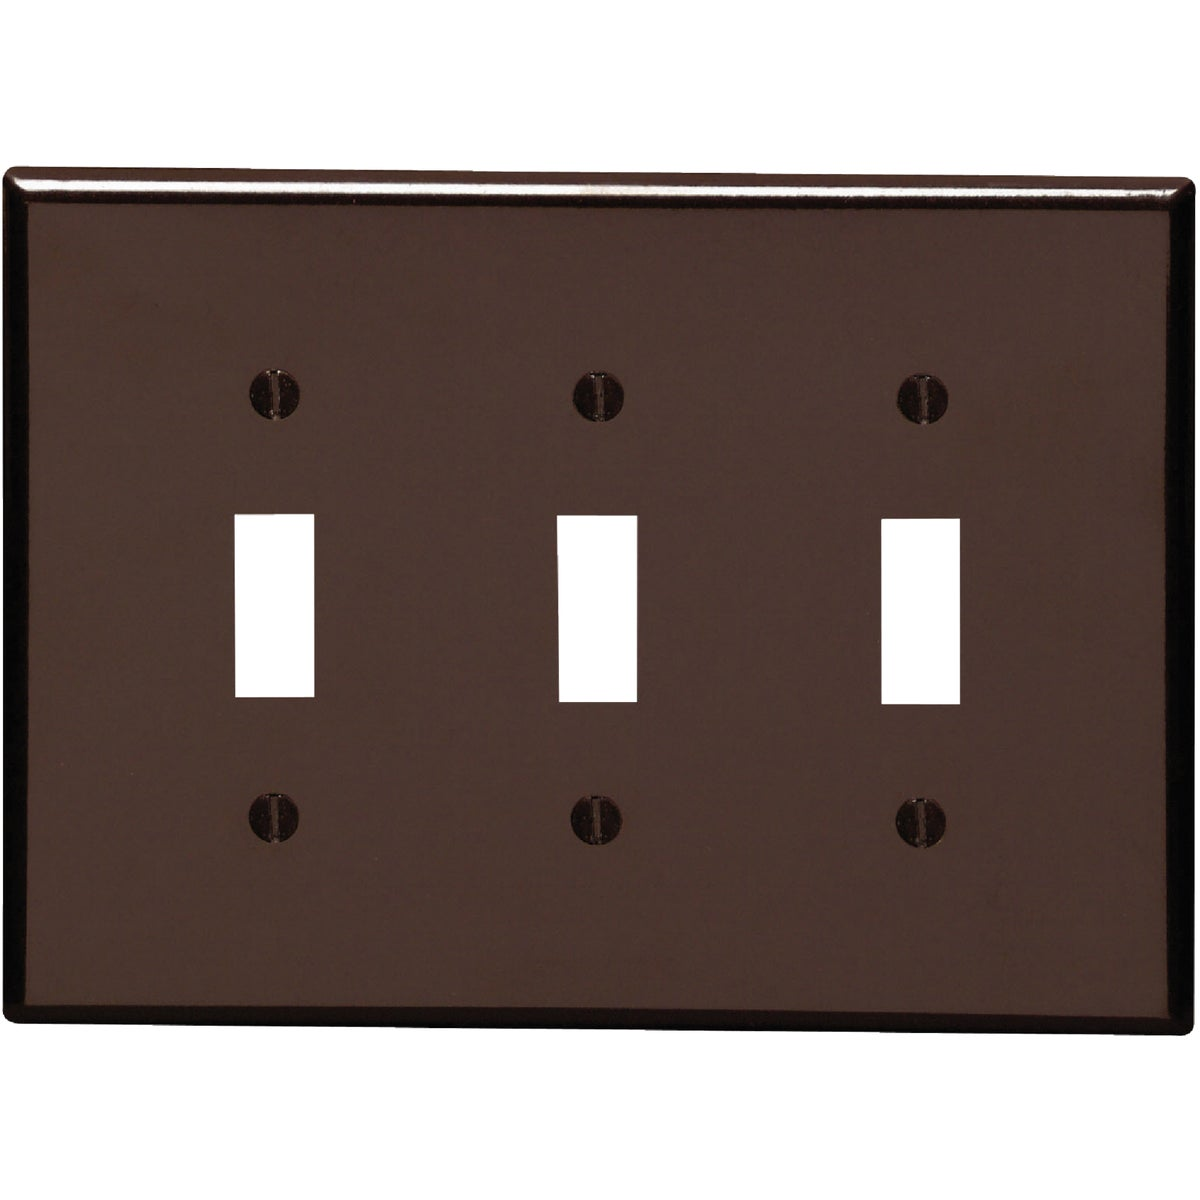 BRN 3-TOGGLE WALL PLATE - 80511 by Leviton Mfg Co